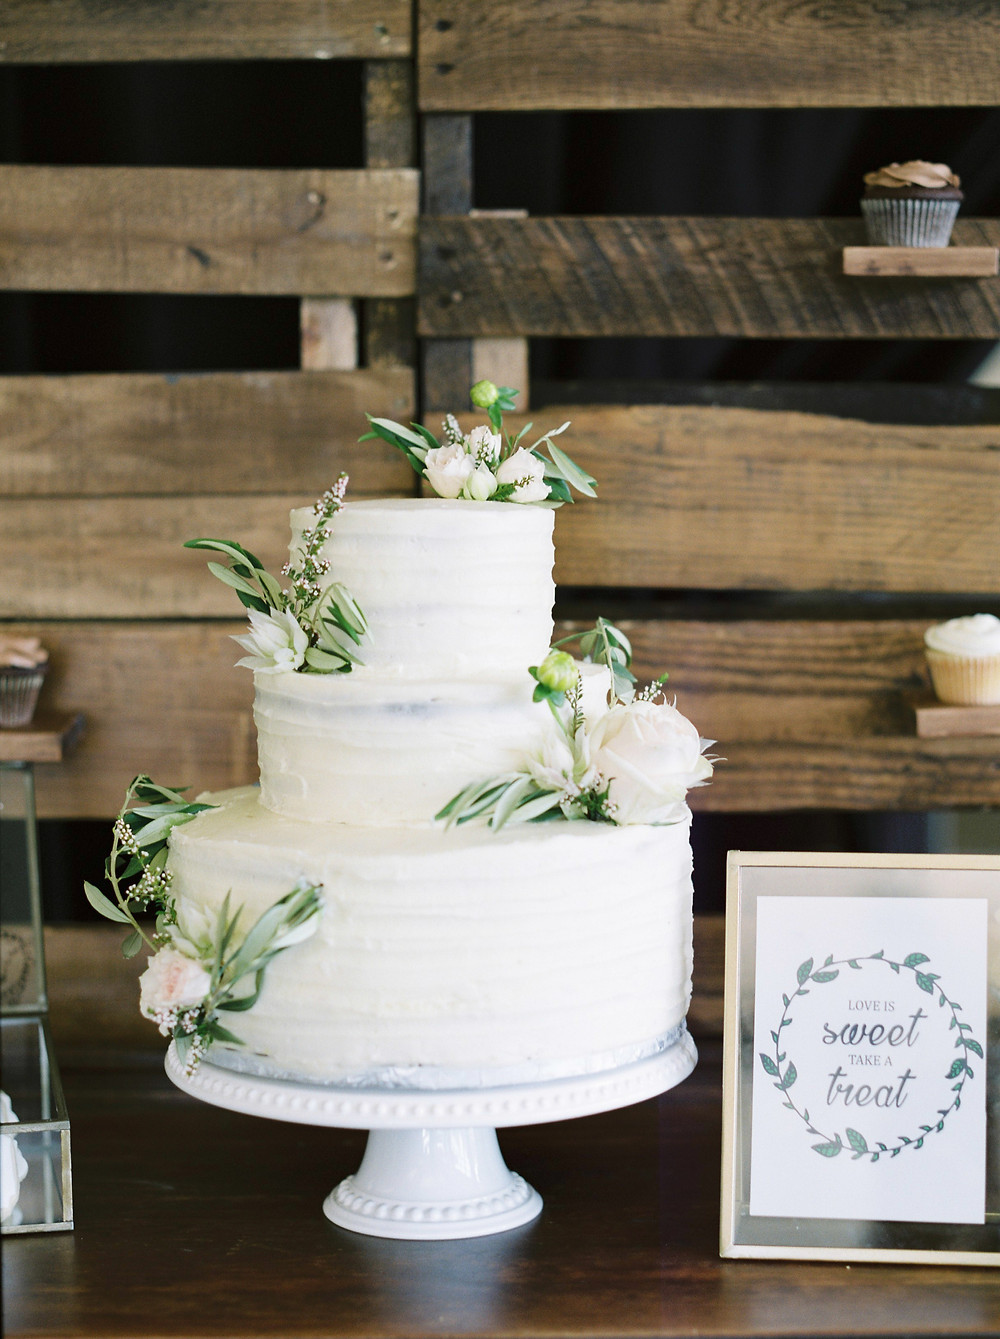 Beanie's Bakeshop wedding cake